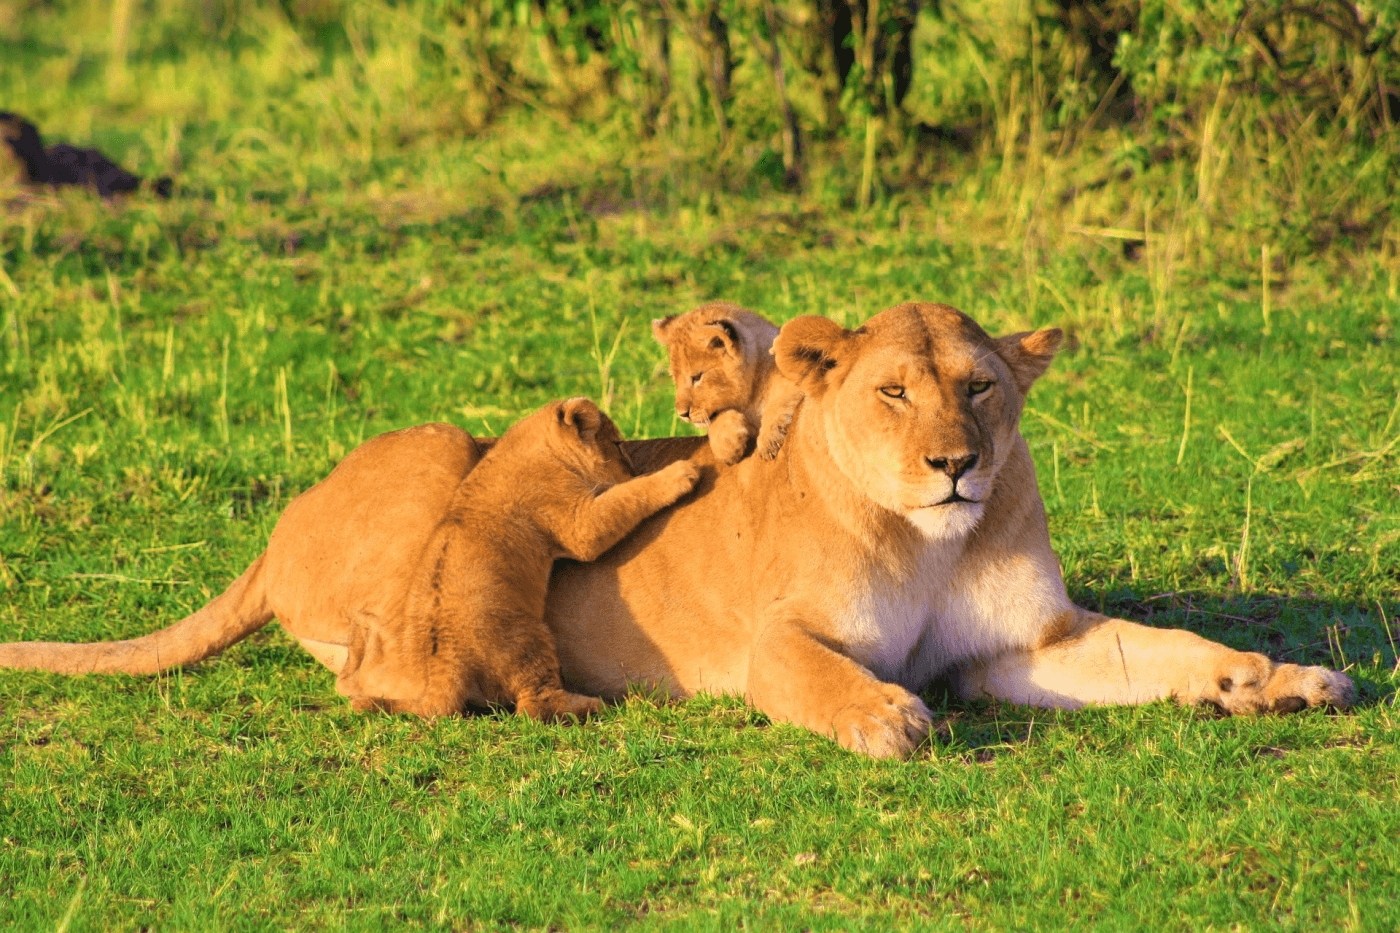 Mother and baby lion cubs